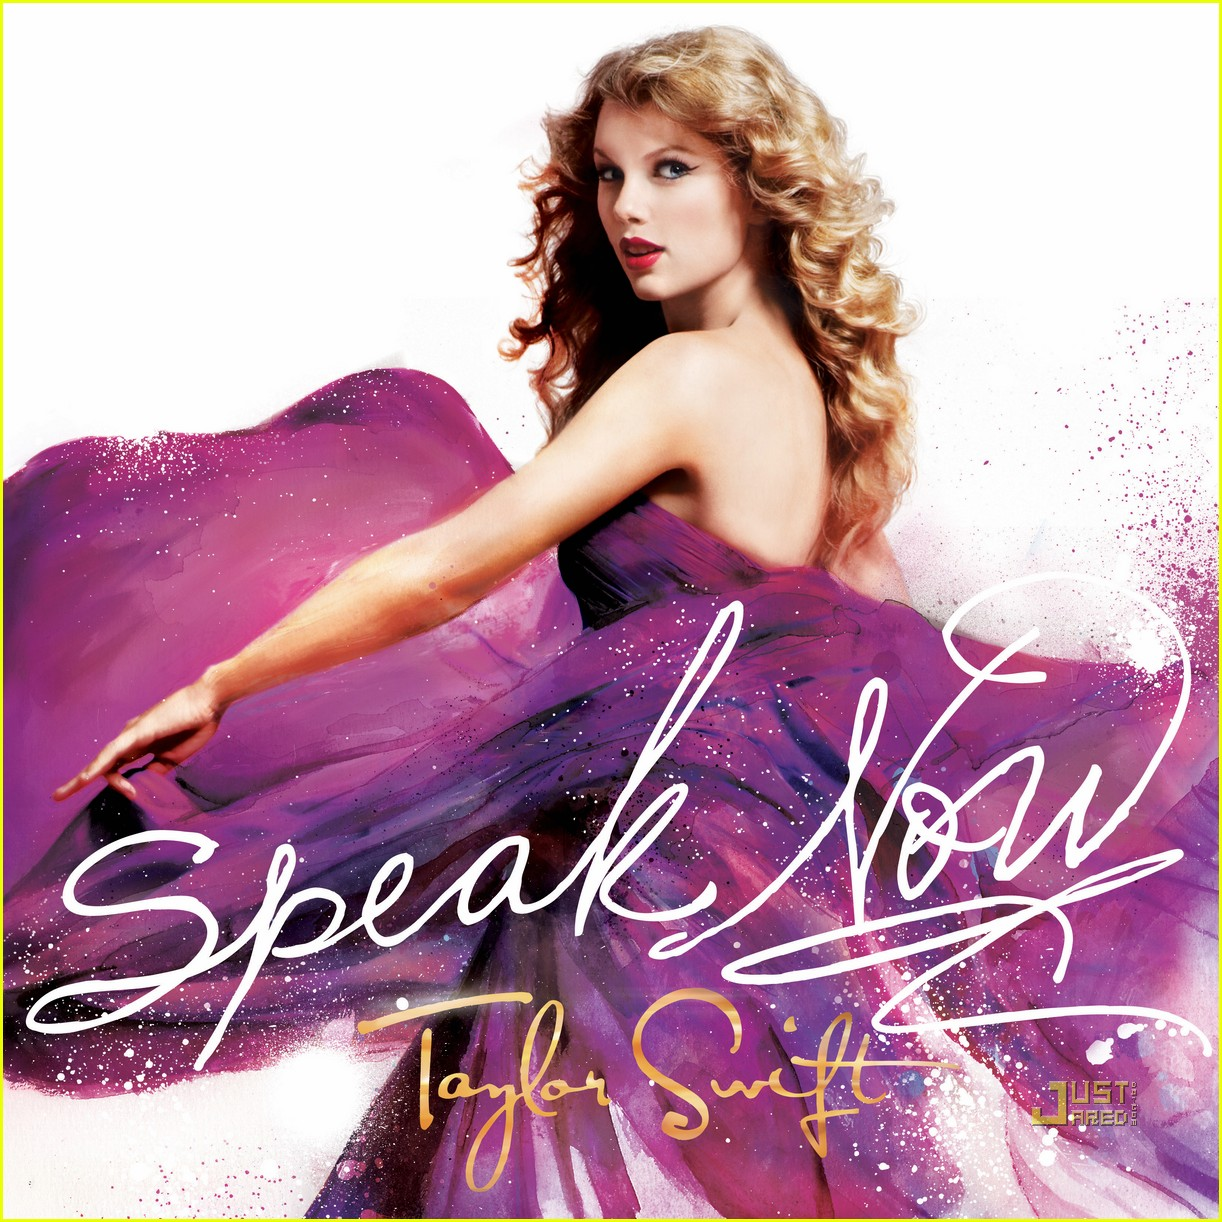 http://3.bp.blogspot.com/_beXnqOAZQ_A/TQDCR-YfdyI/AAAAAAAAD9g/2lUpqZSFLEM/s1600/taylor-swift-speak-now-album-cover-02.jpg